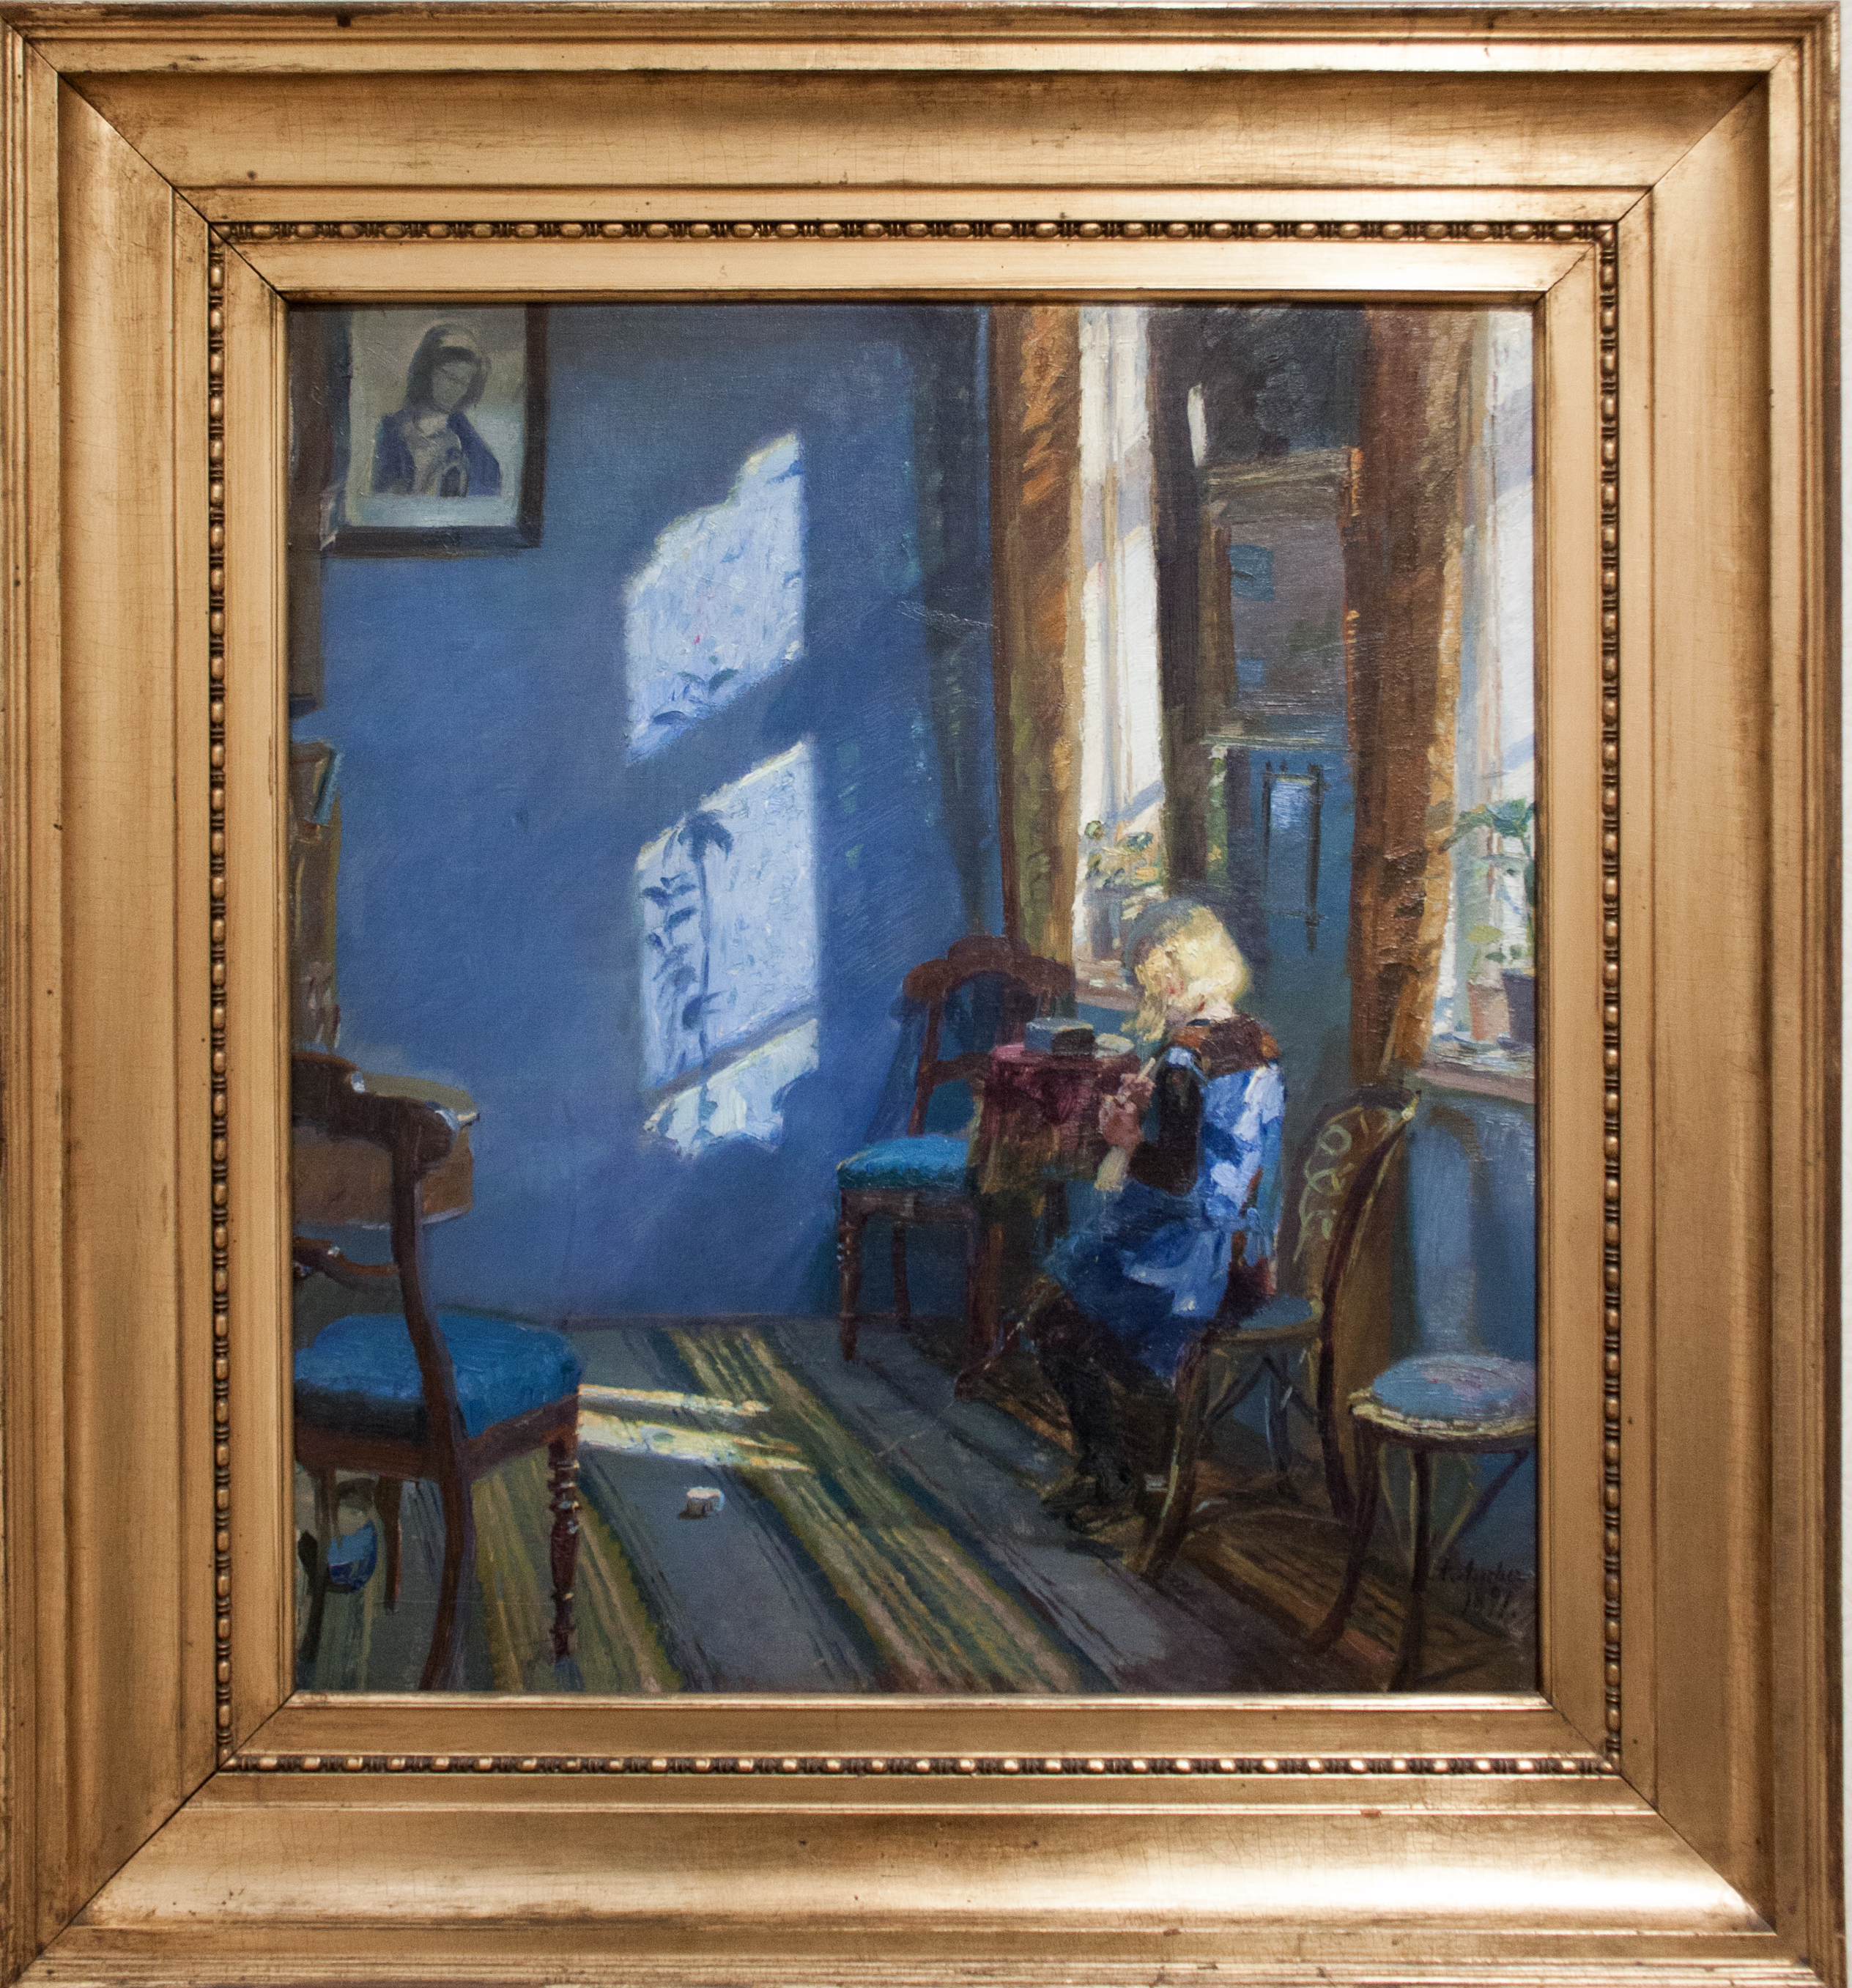 File:Sunlight in the blue room, by Anna Ancher, with frame.jpg ...